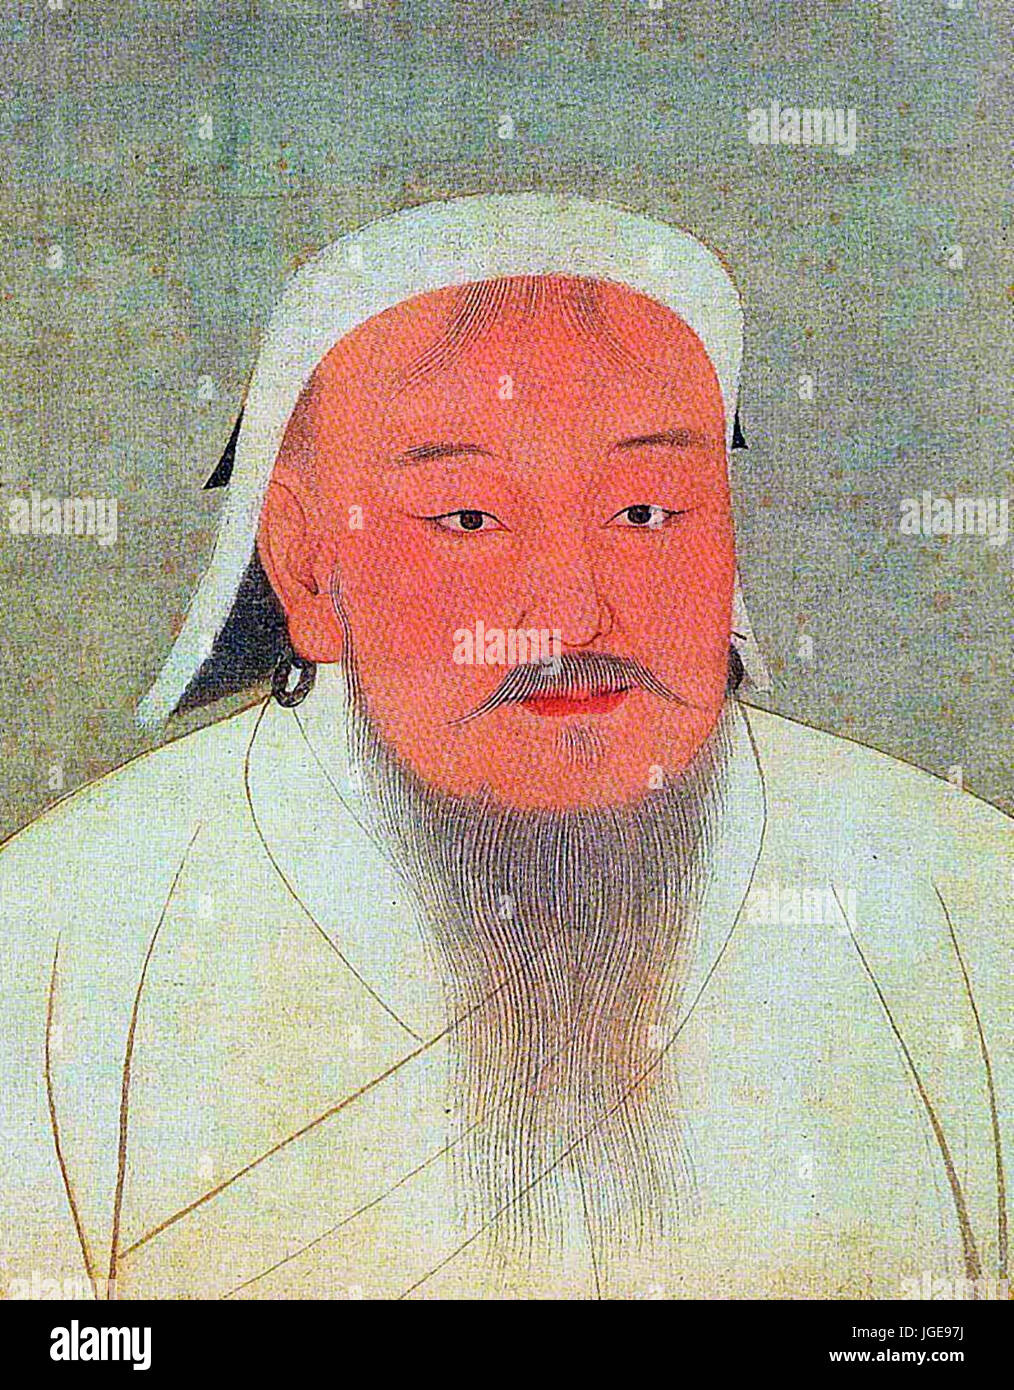 Taizu, better known as Genghis Khan, 14th century - Stock Image